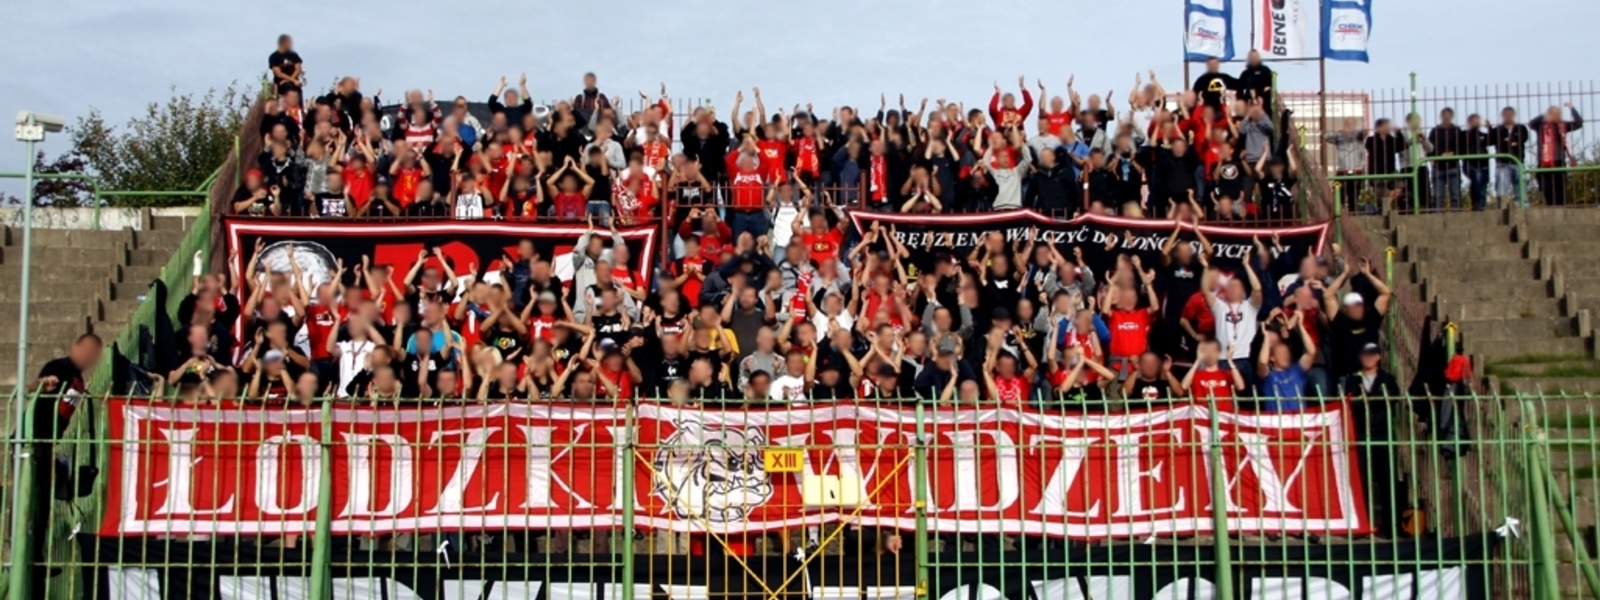 Very big widzew d